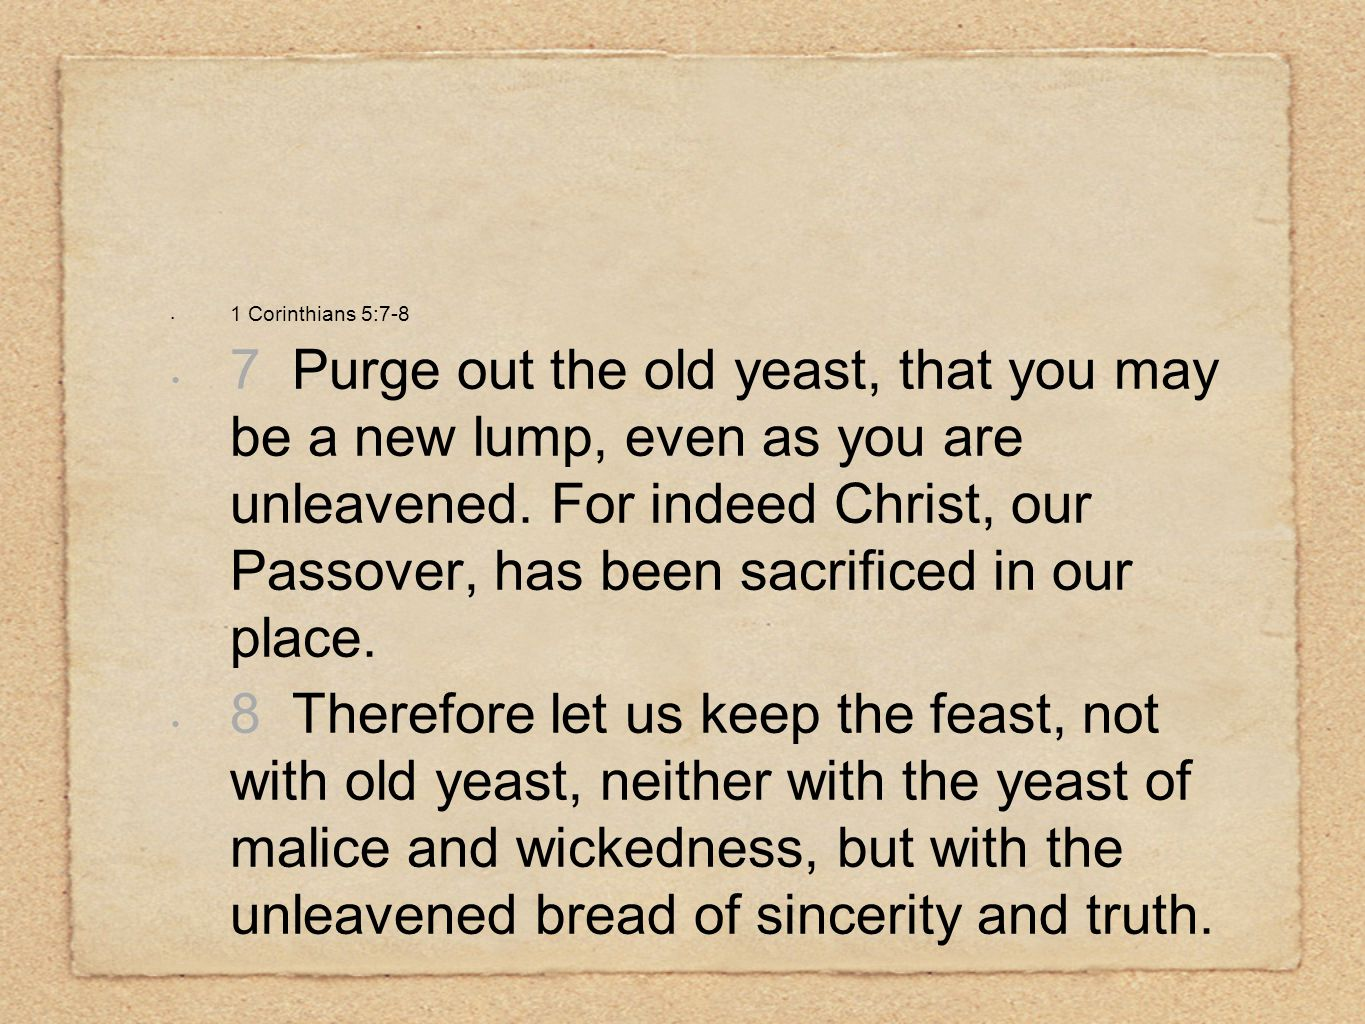 1 Corinthians 5:7-8 7 Purge out the old yeast, that you may be a new lump, even as you are unleavened.